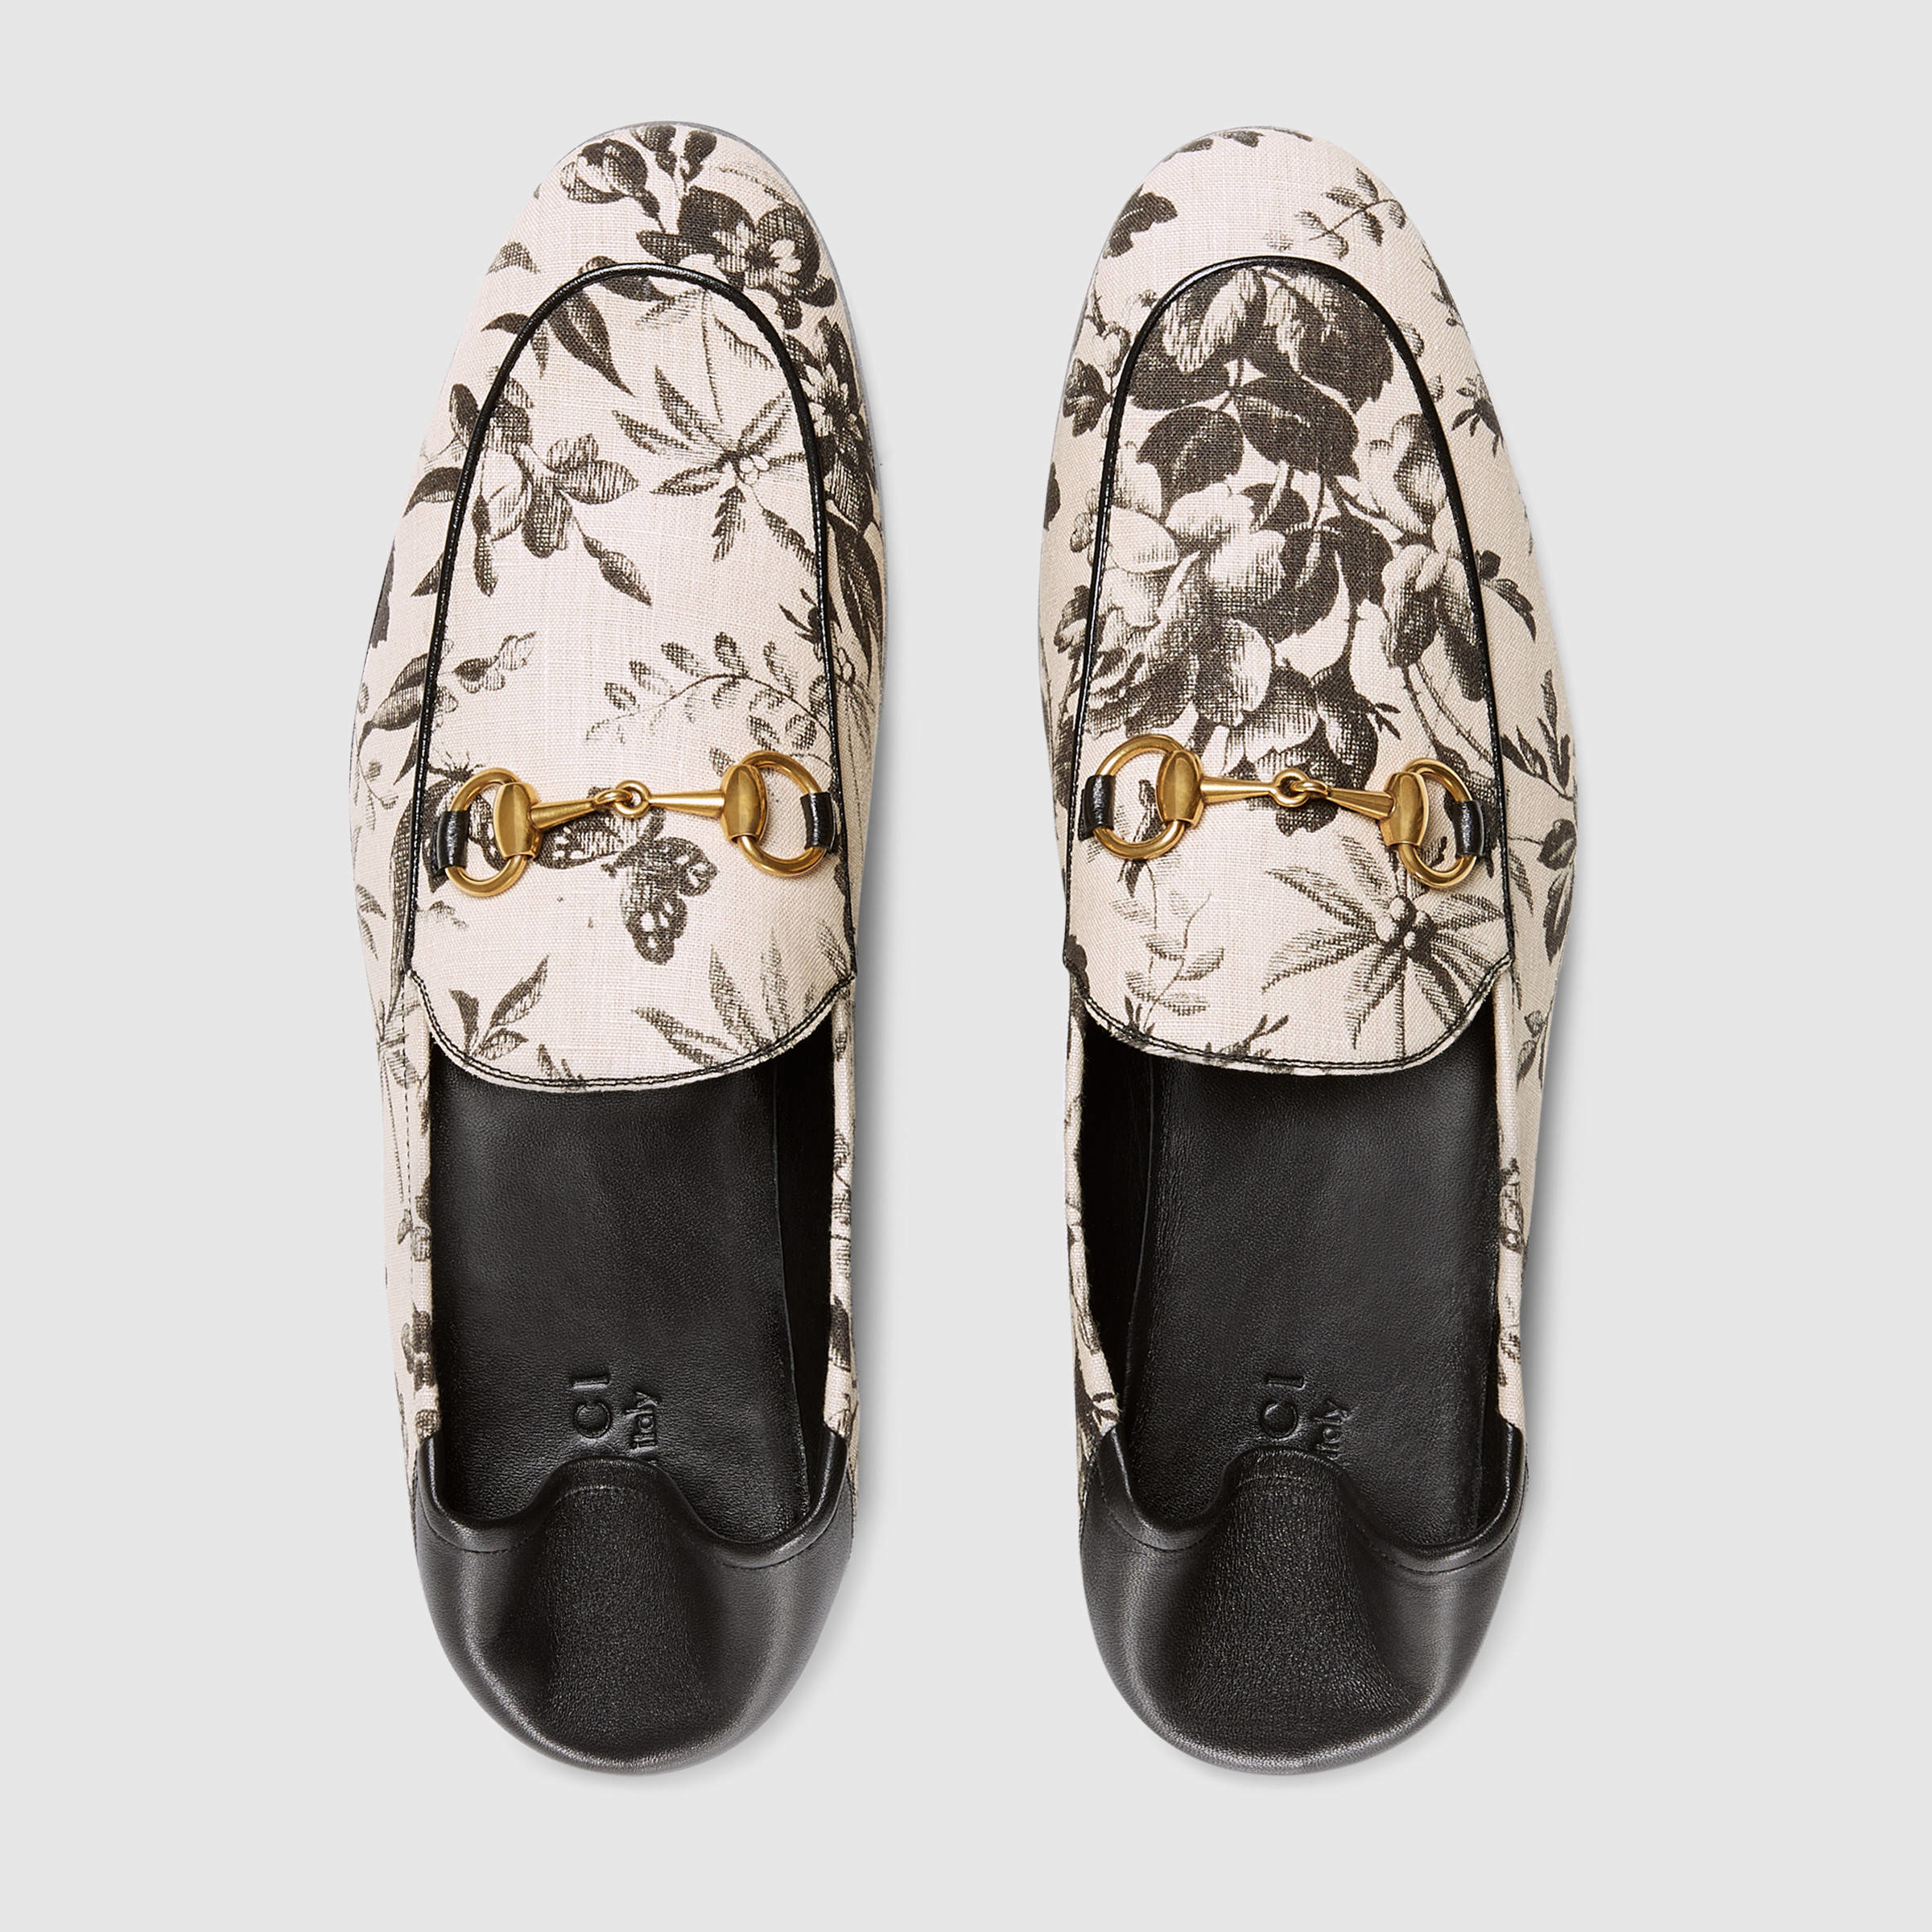 Gucci Kira Jeweled Suede Loafers in Nude (Natural) for Men